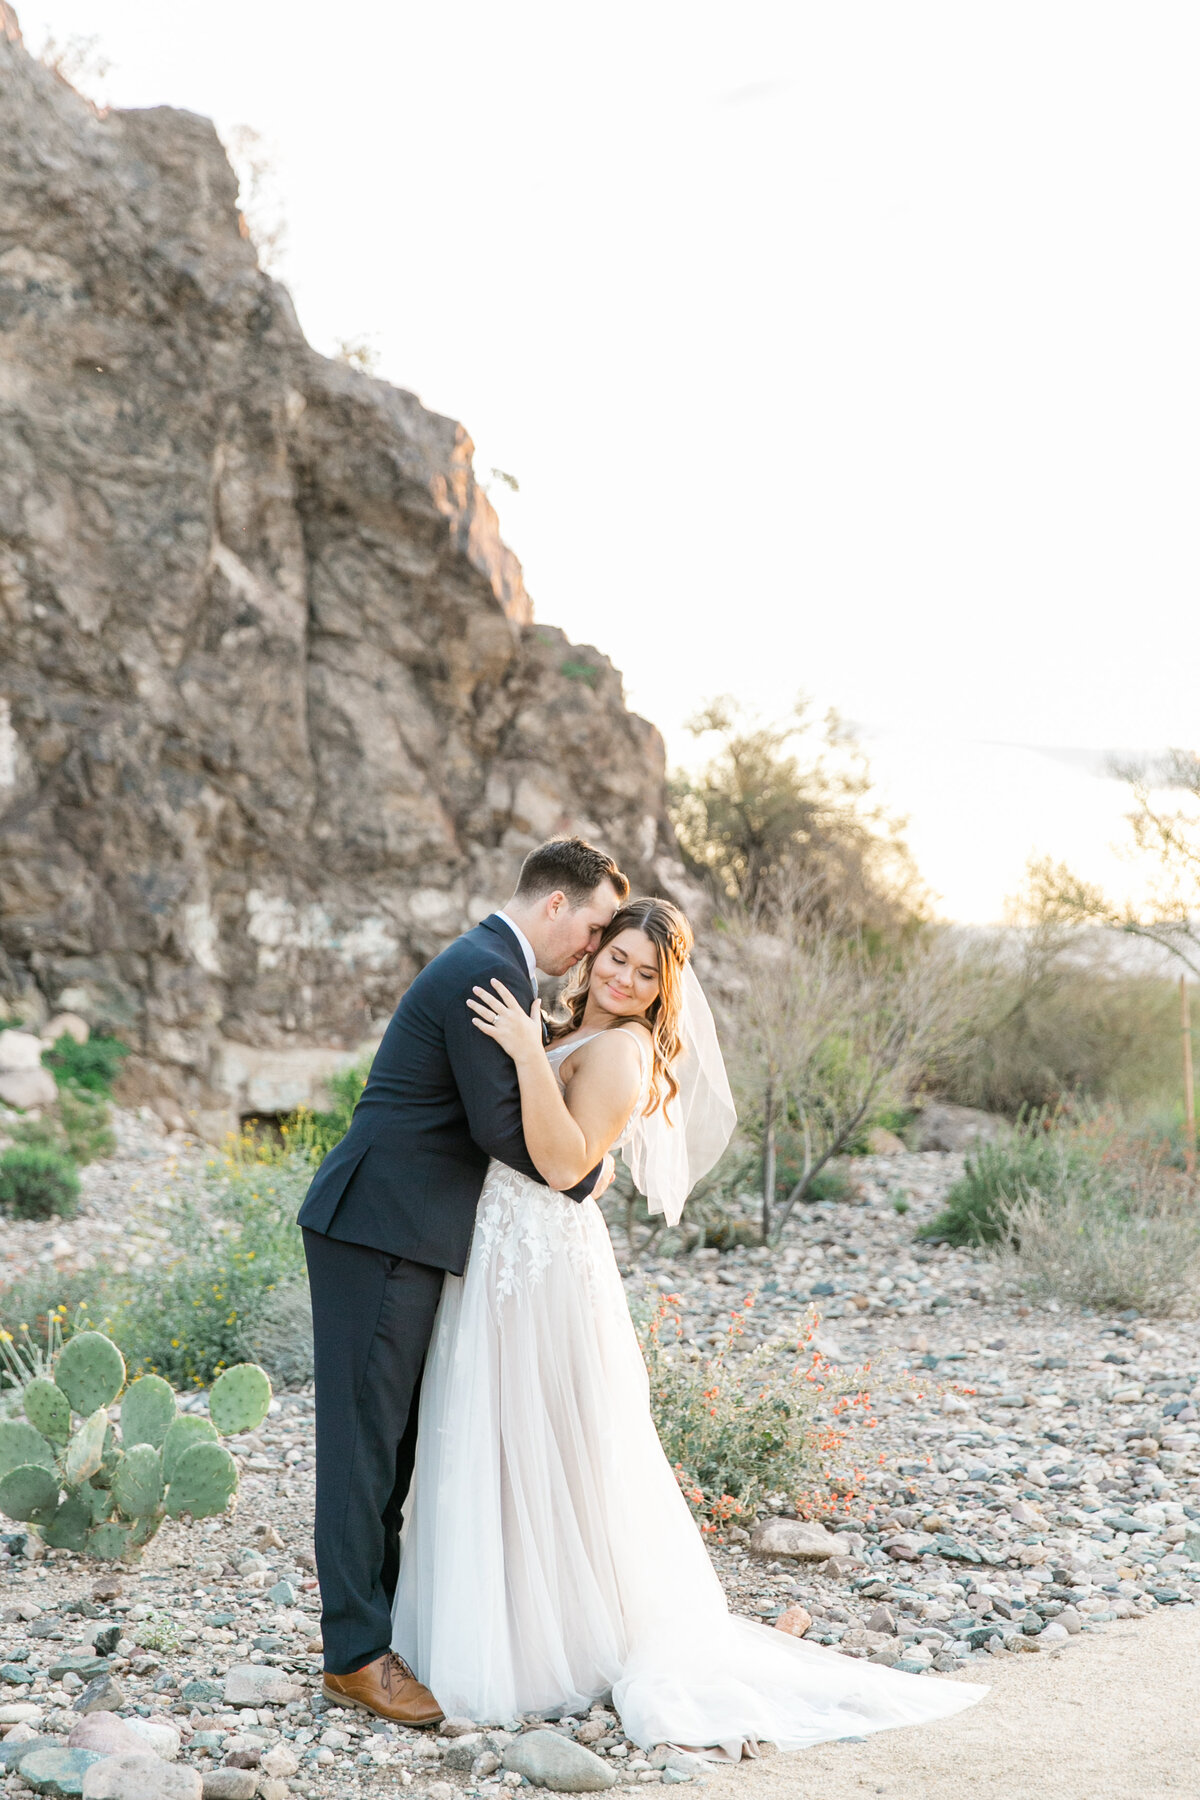 Karlie Colleen Photography - Arizona Backyard wedding - Brittney & Josh-230